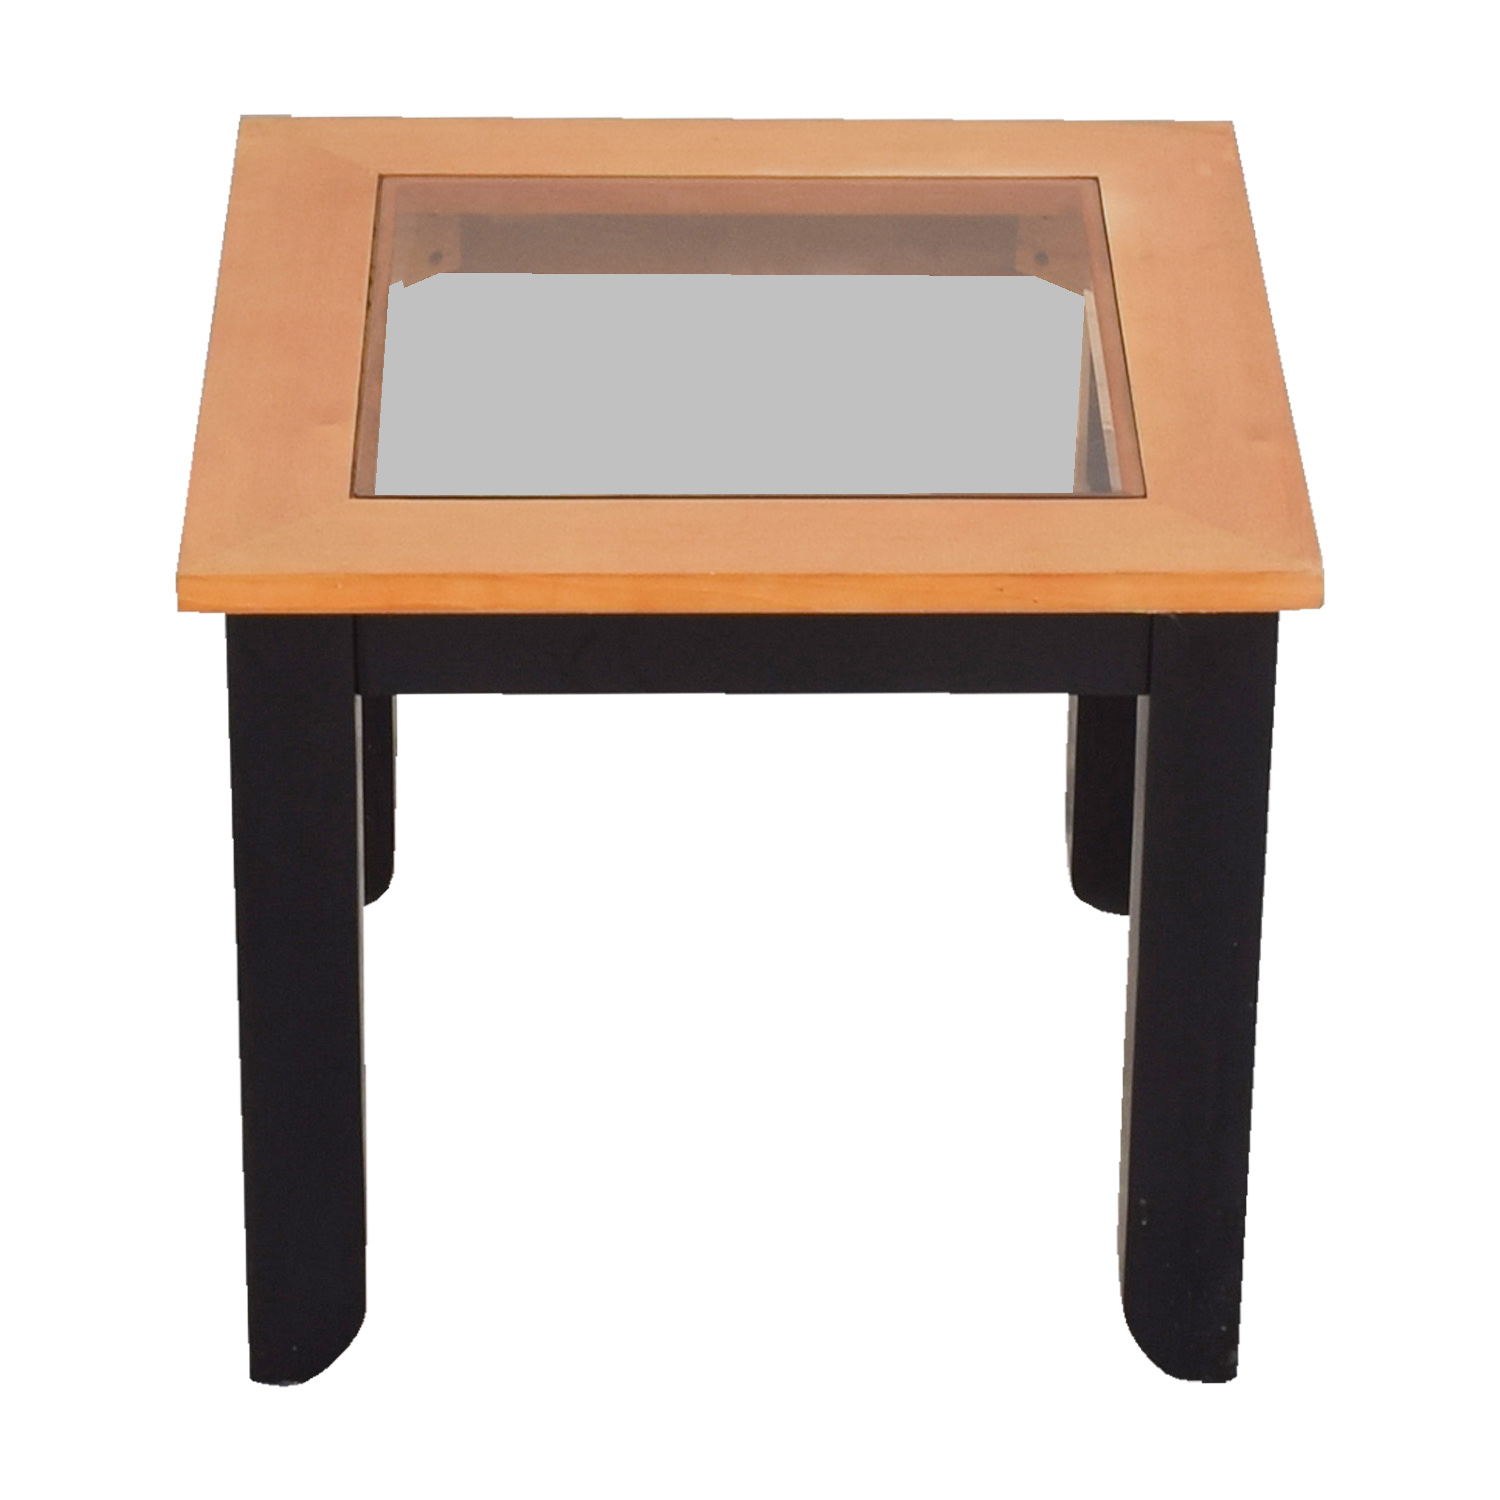 buy Smoke Glass and Wood End Table online